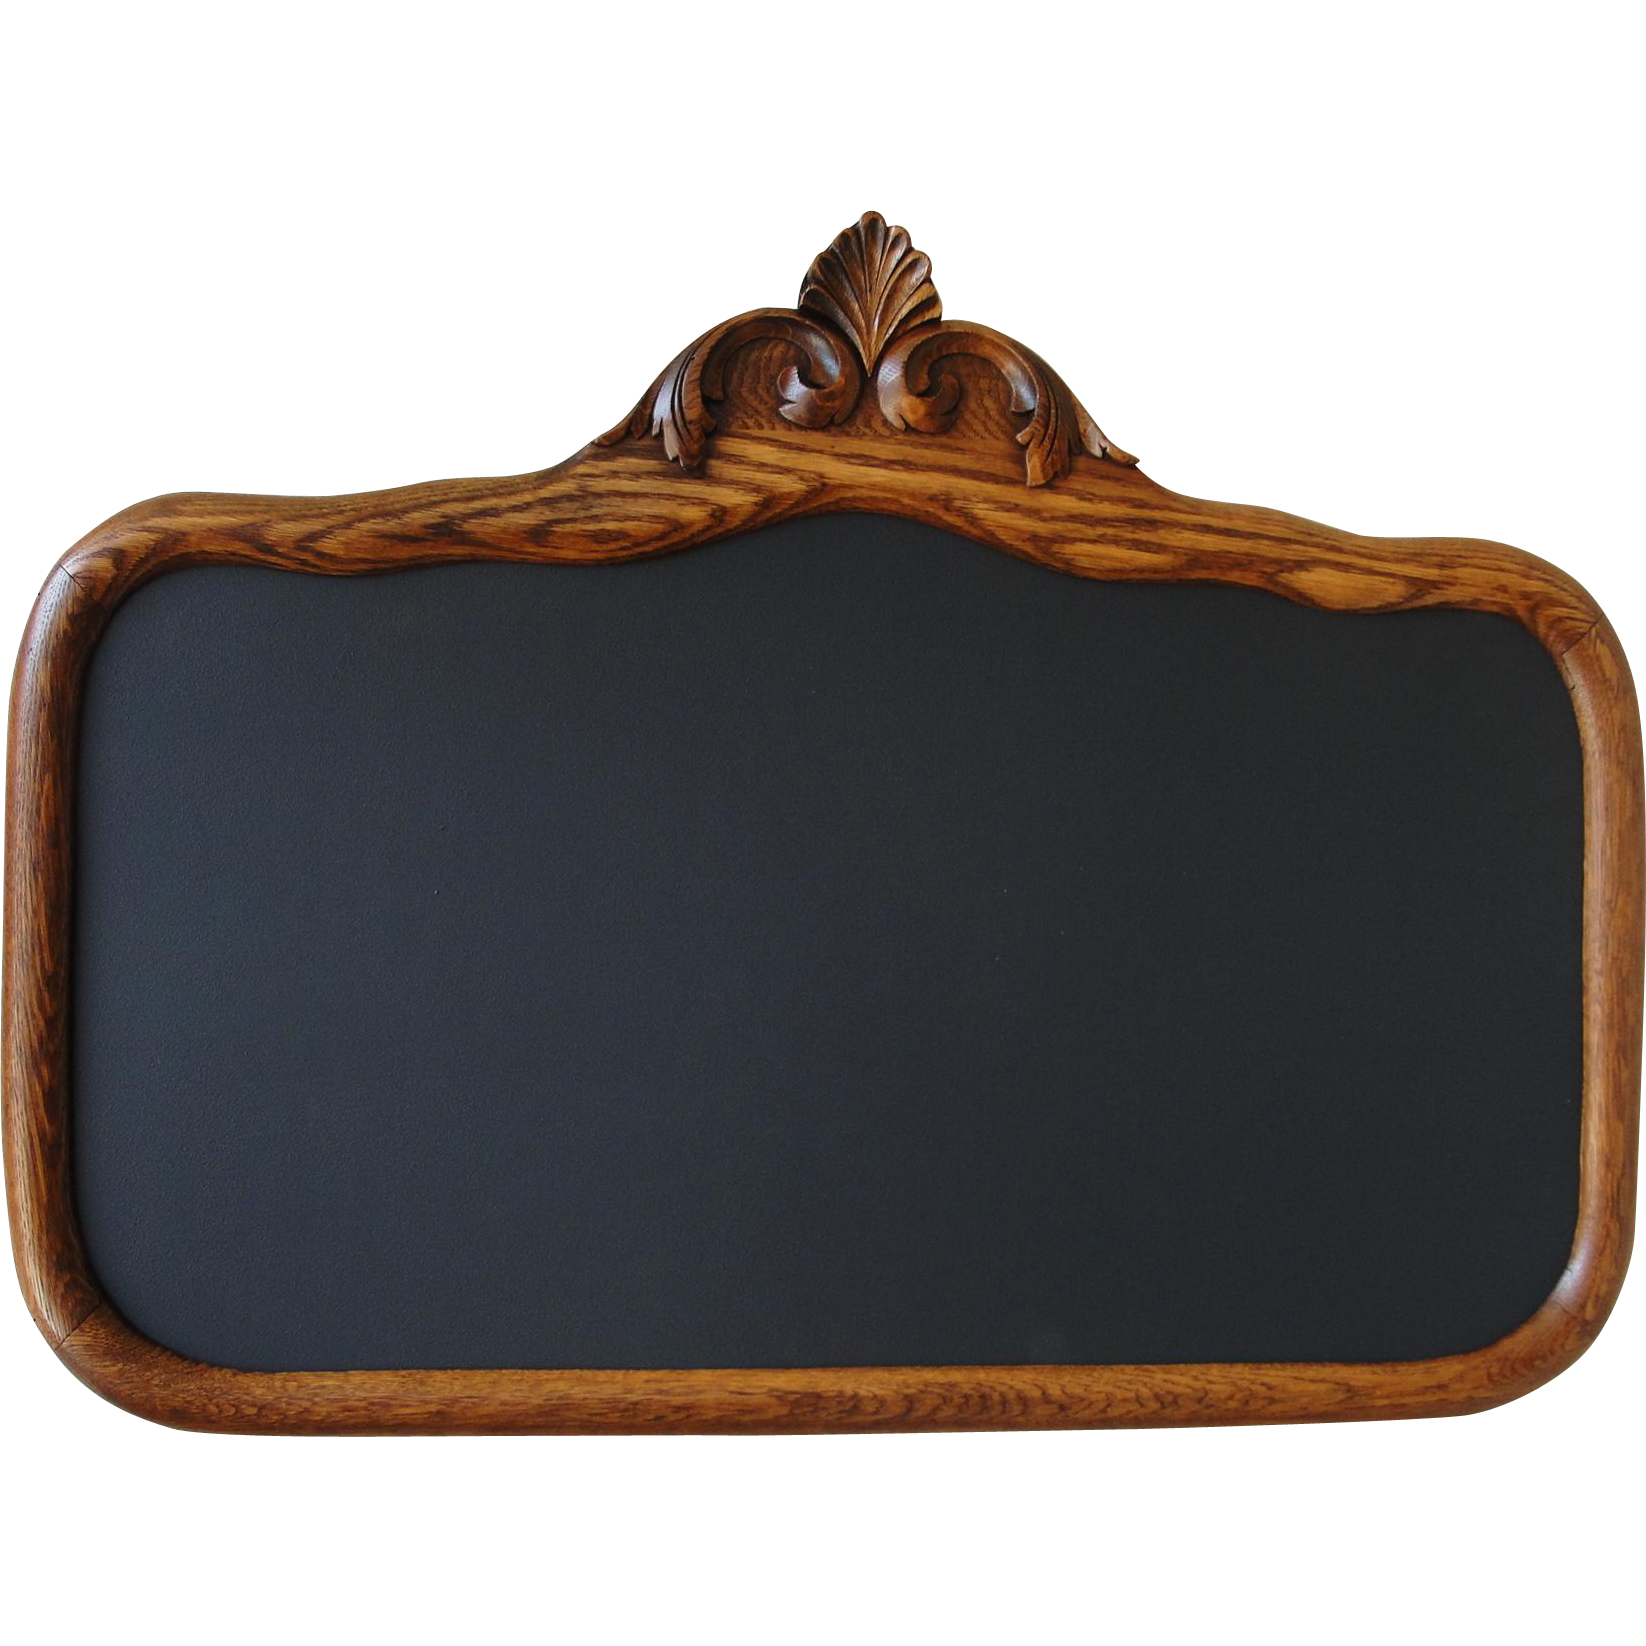 Chalkboard transparent old. Vintage oak frame sold